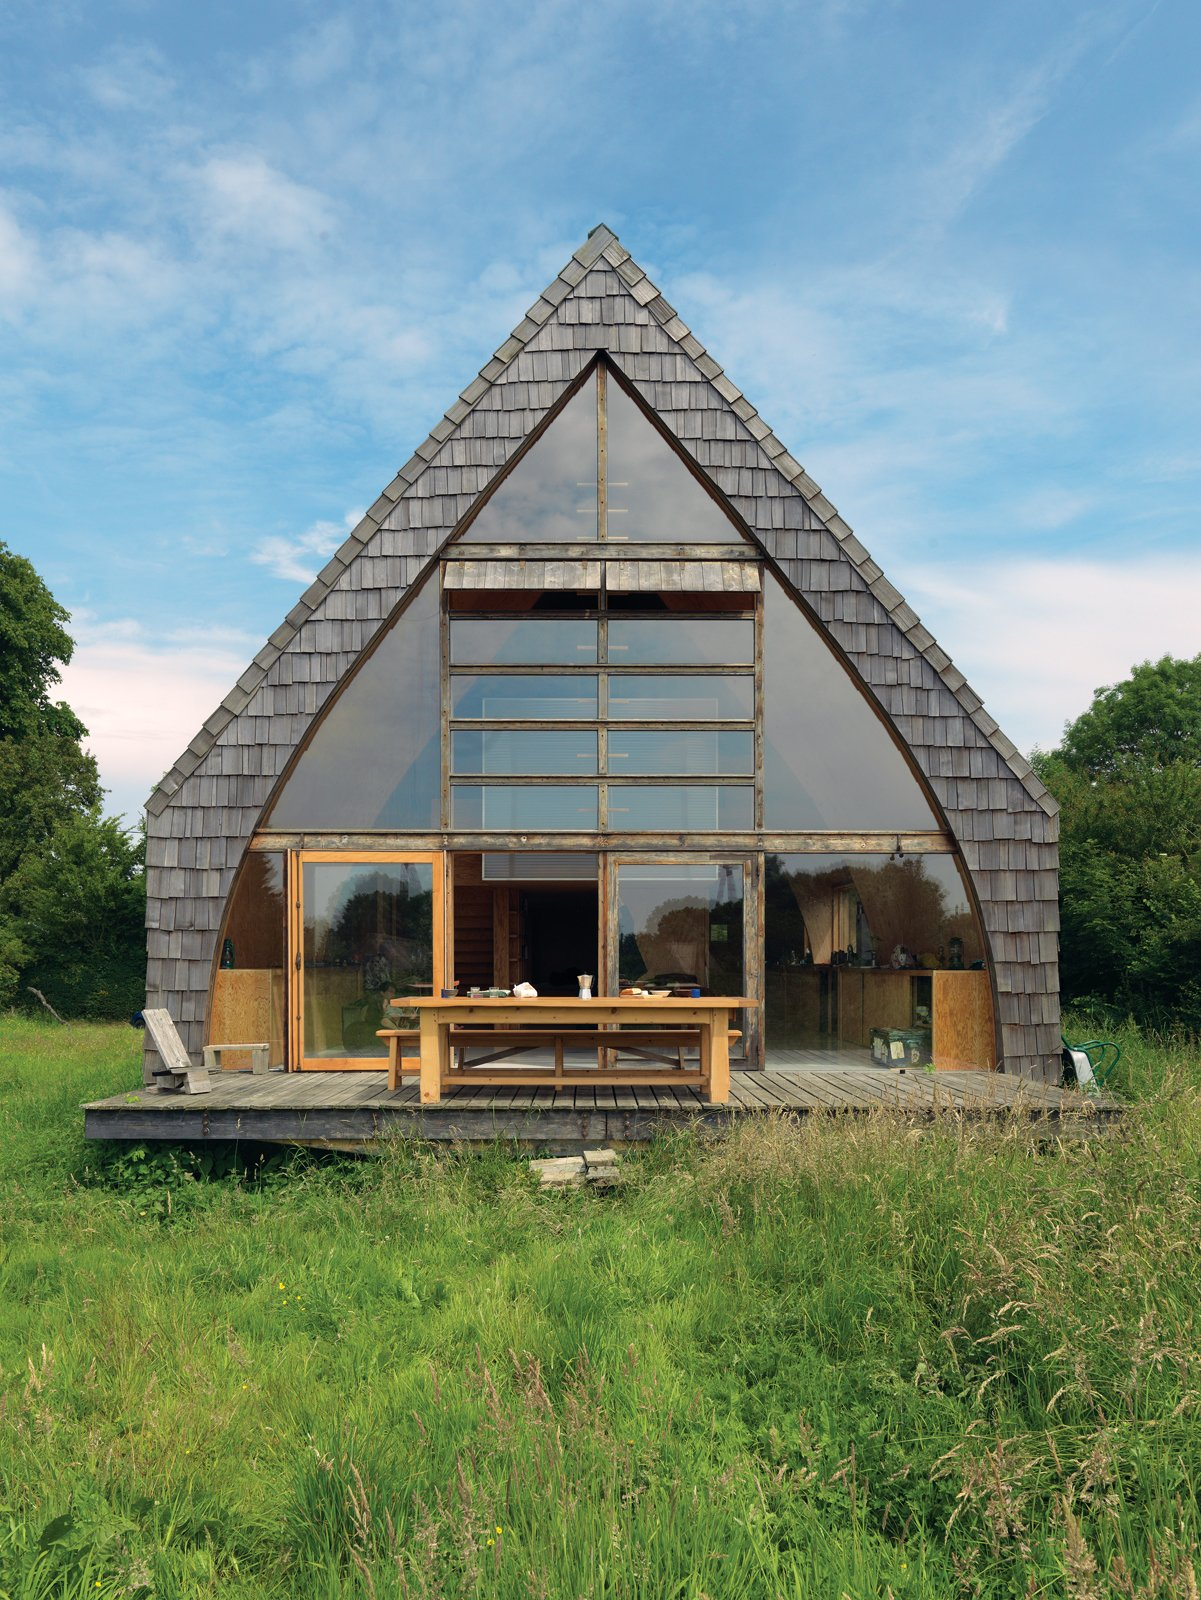 Exterior, Cabin Building Type, House Building Type, A-Frame RoofLine, Shingles Roof Material, and Wood Siding Material In the tiny town of Auvilliers, France, architect Jean-Baptiste Barache designed an elegant cedar-shingled home with an A-frame construction.  Best Photos from Modern Wooden A-Frame Retreat in France